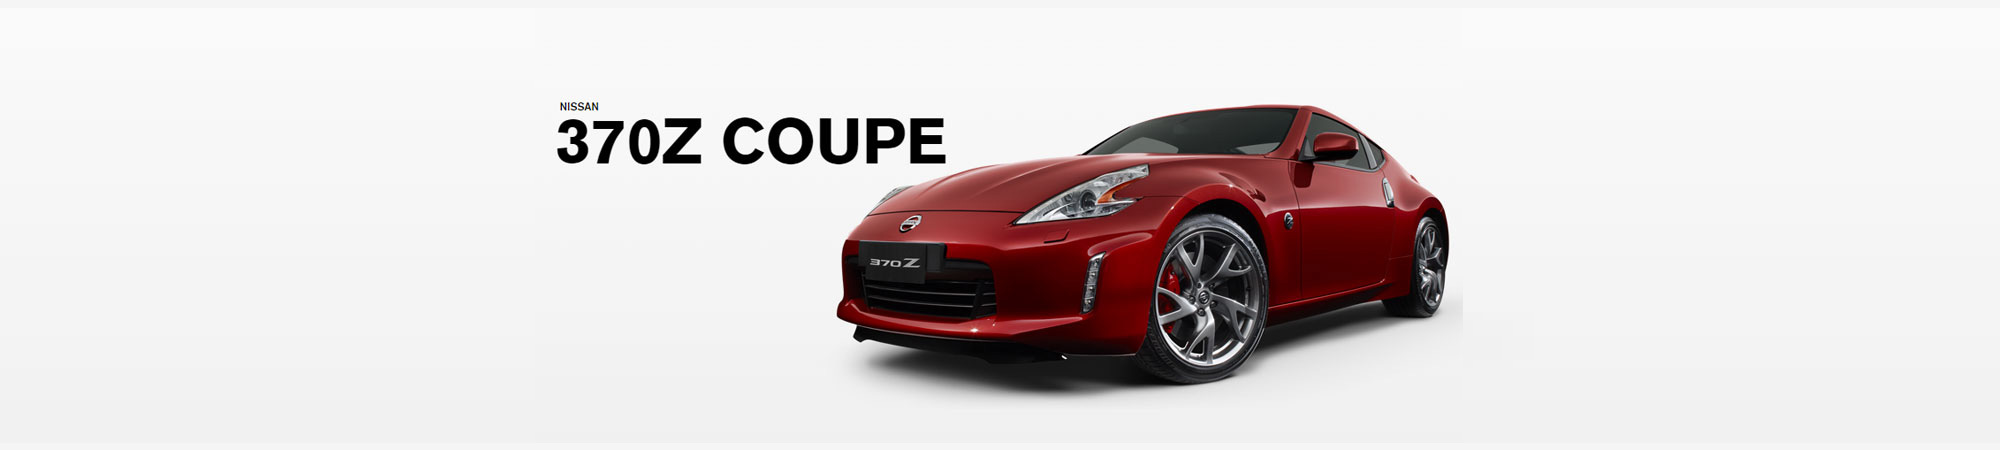 370Z Coupe Banner